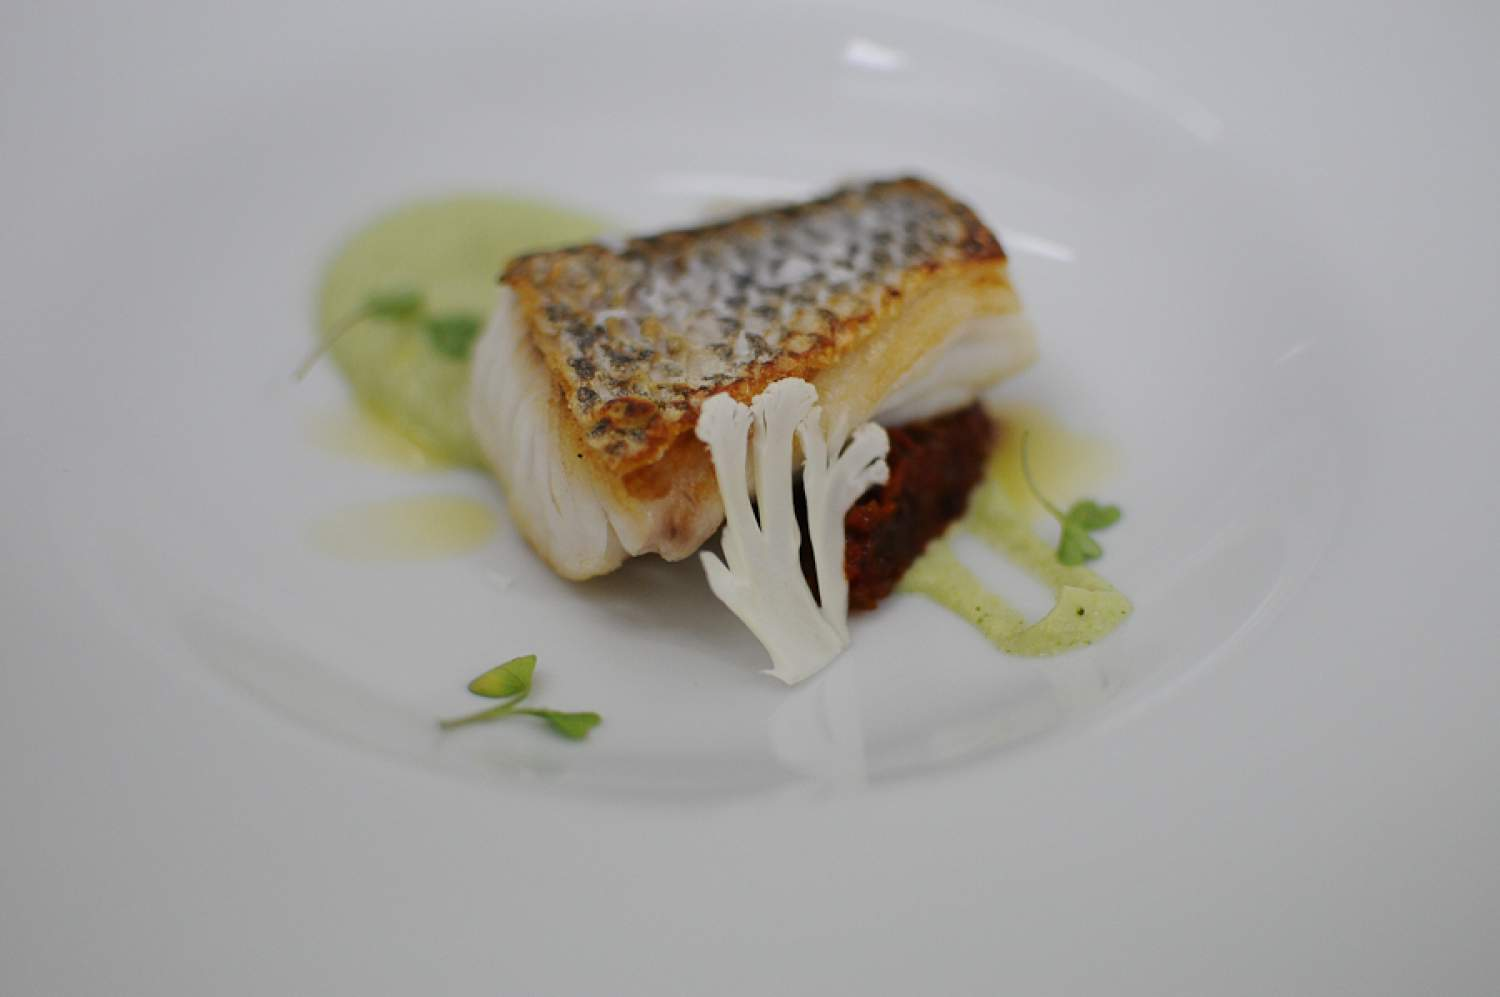 Plate at Passion restaurant by Martin Berasatgui